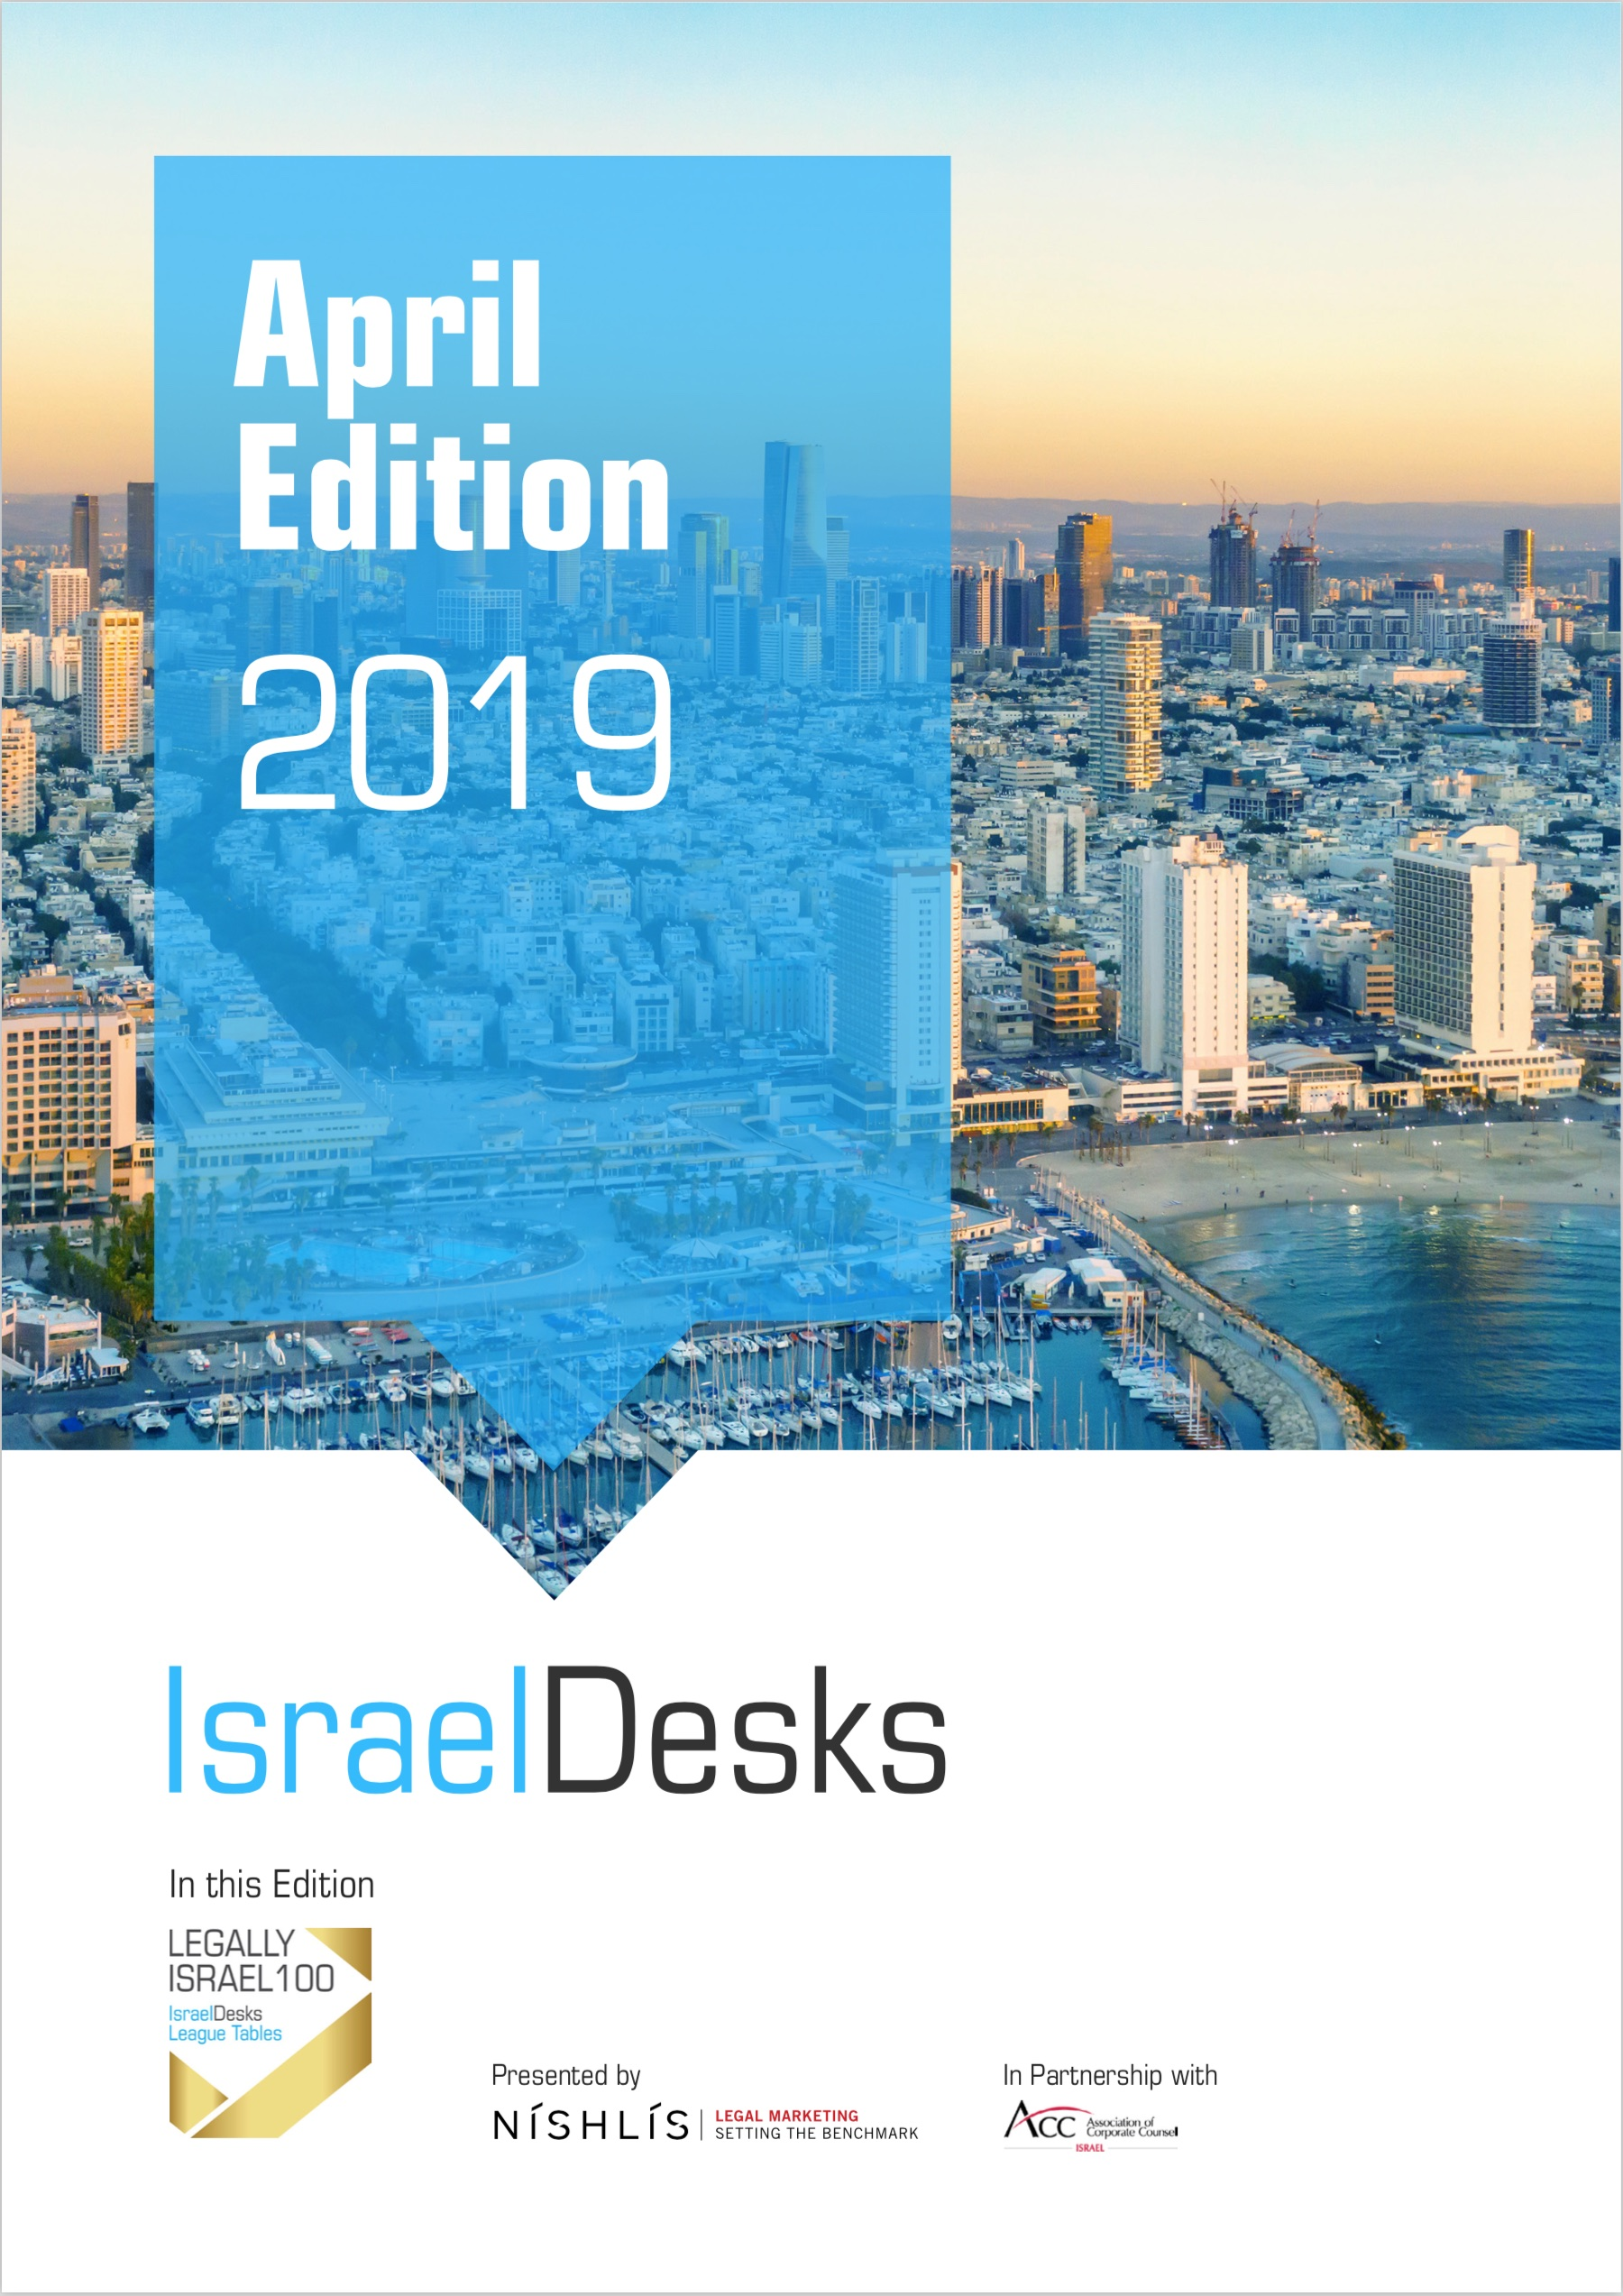 IsraelDesks Magazine – April 2019 Edition